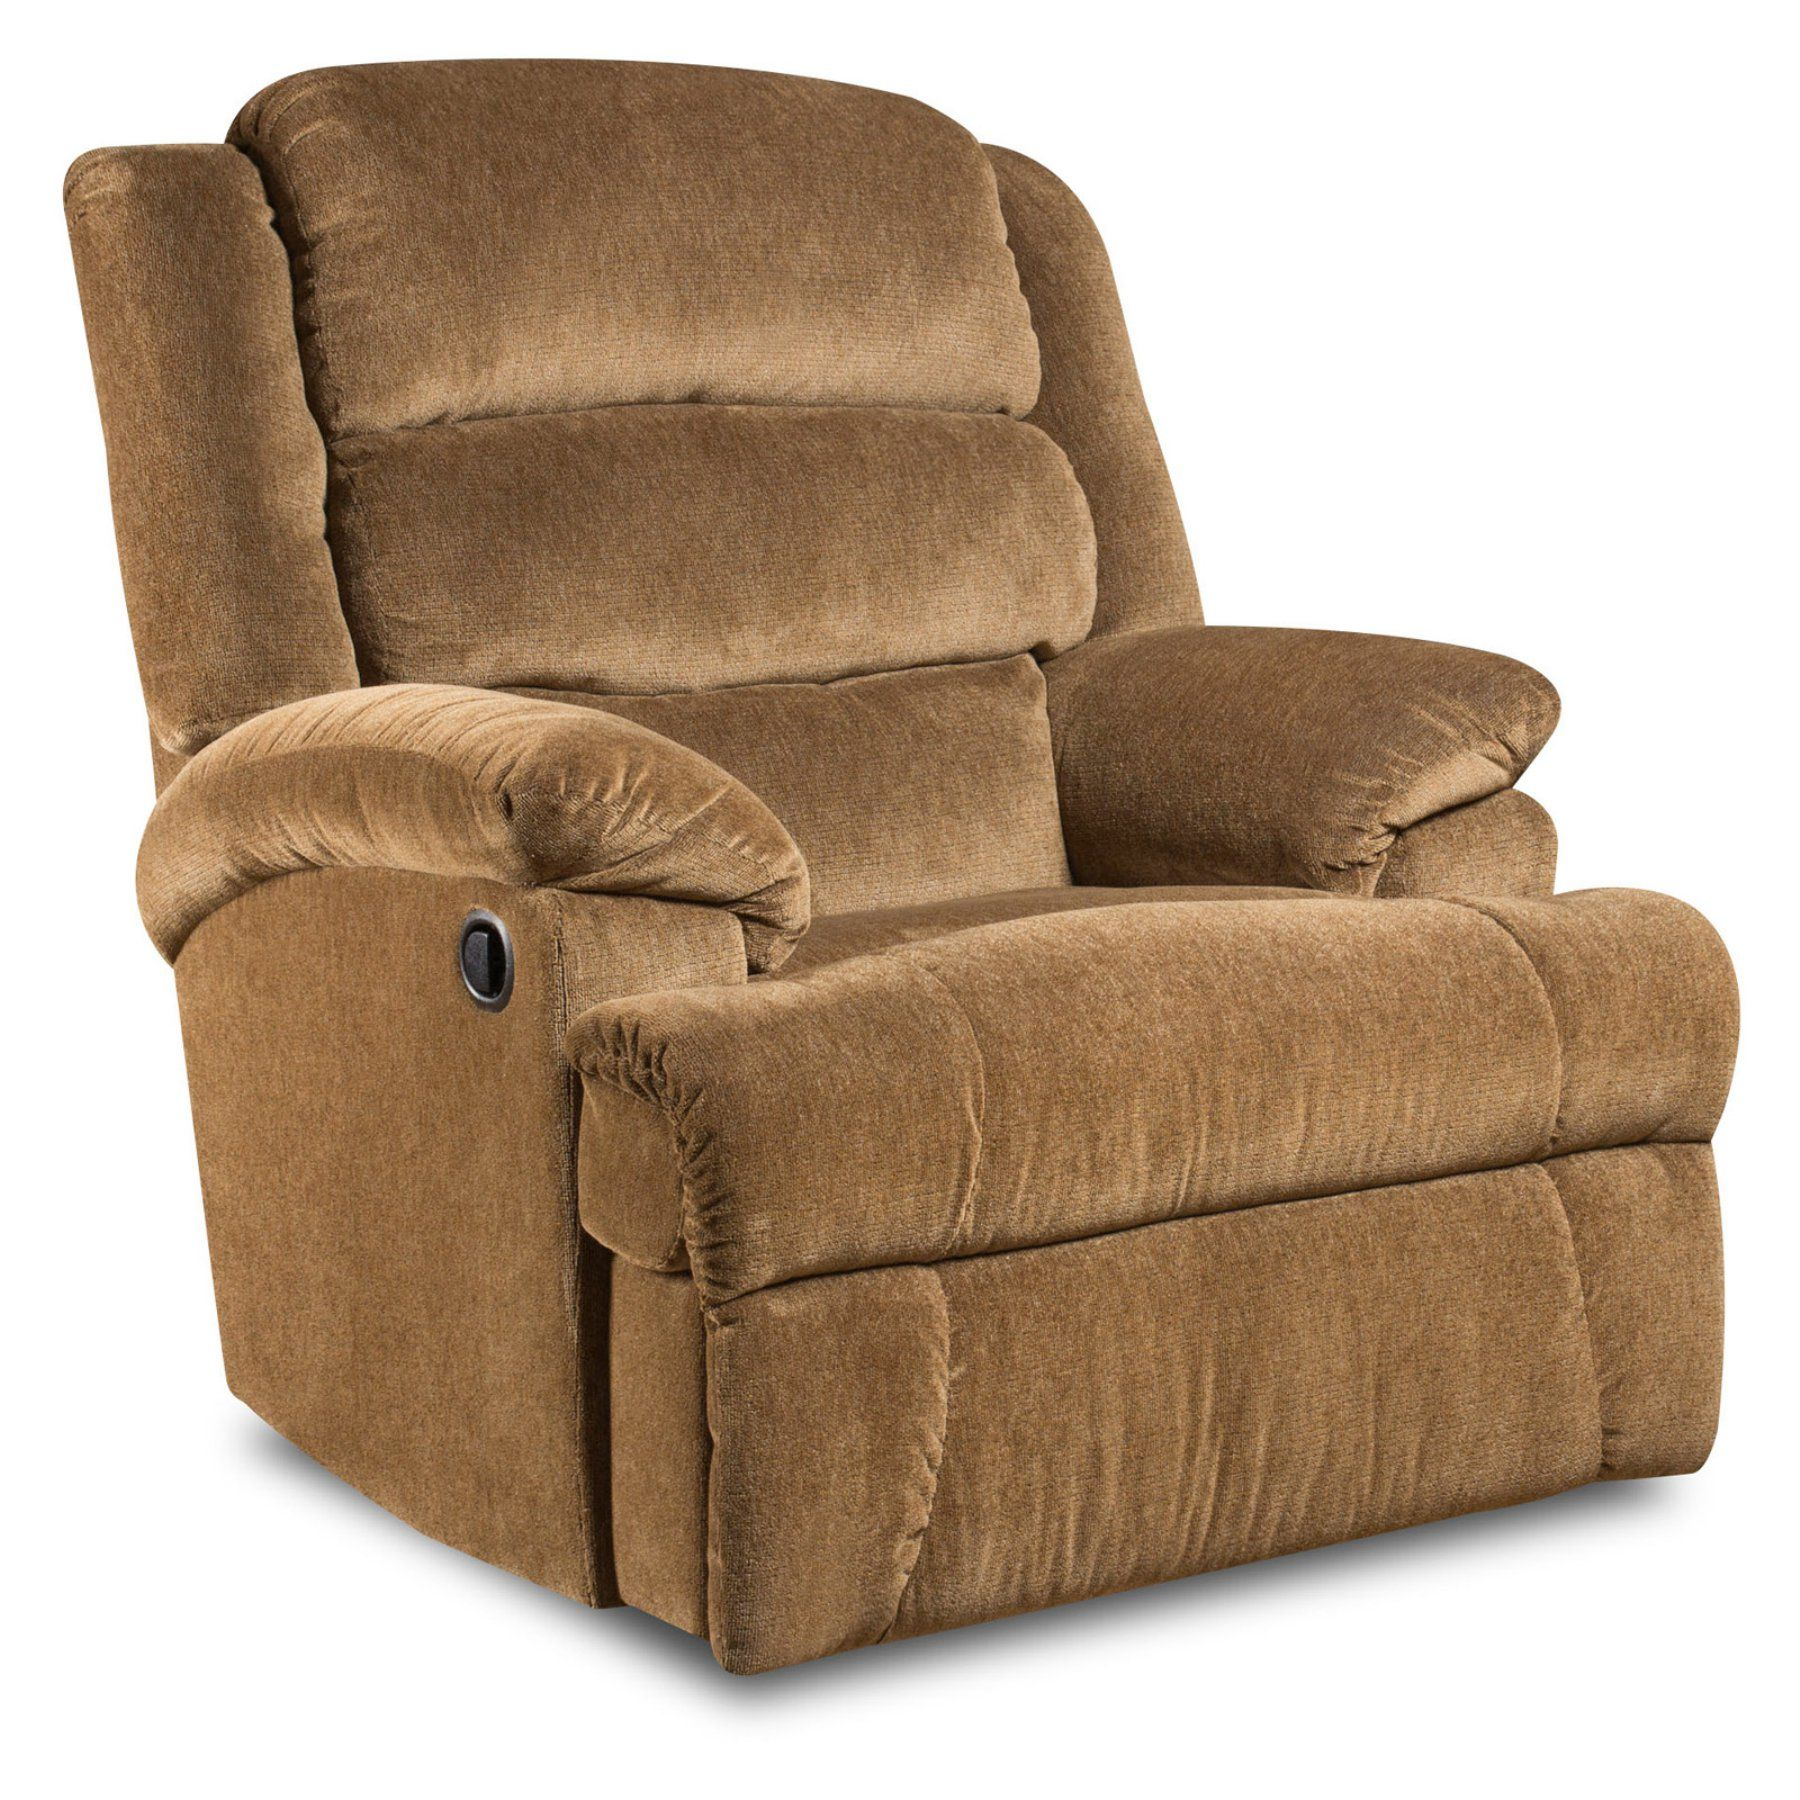 Brilliant American Furniture Aynsley Recliner 9960 7920 Products Bralicious Painted Fabric Chair Ideas Braliciousco